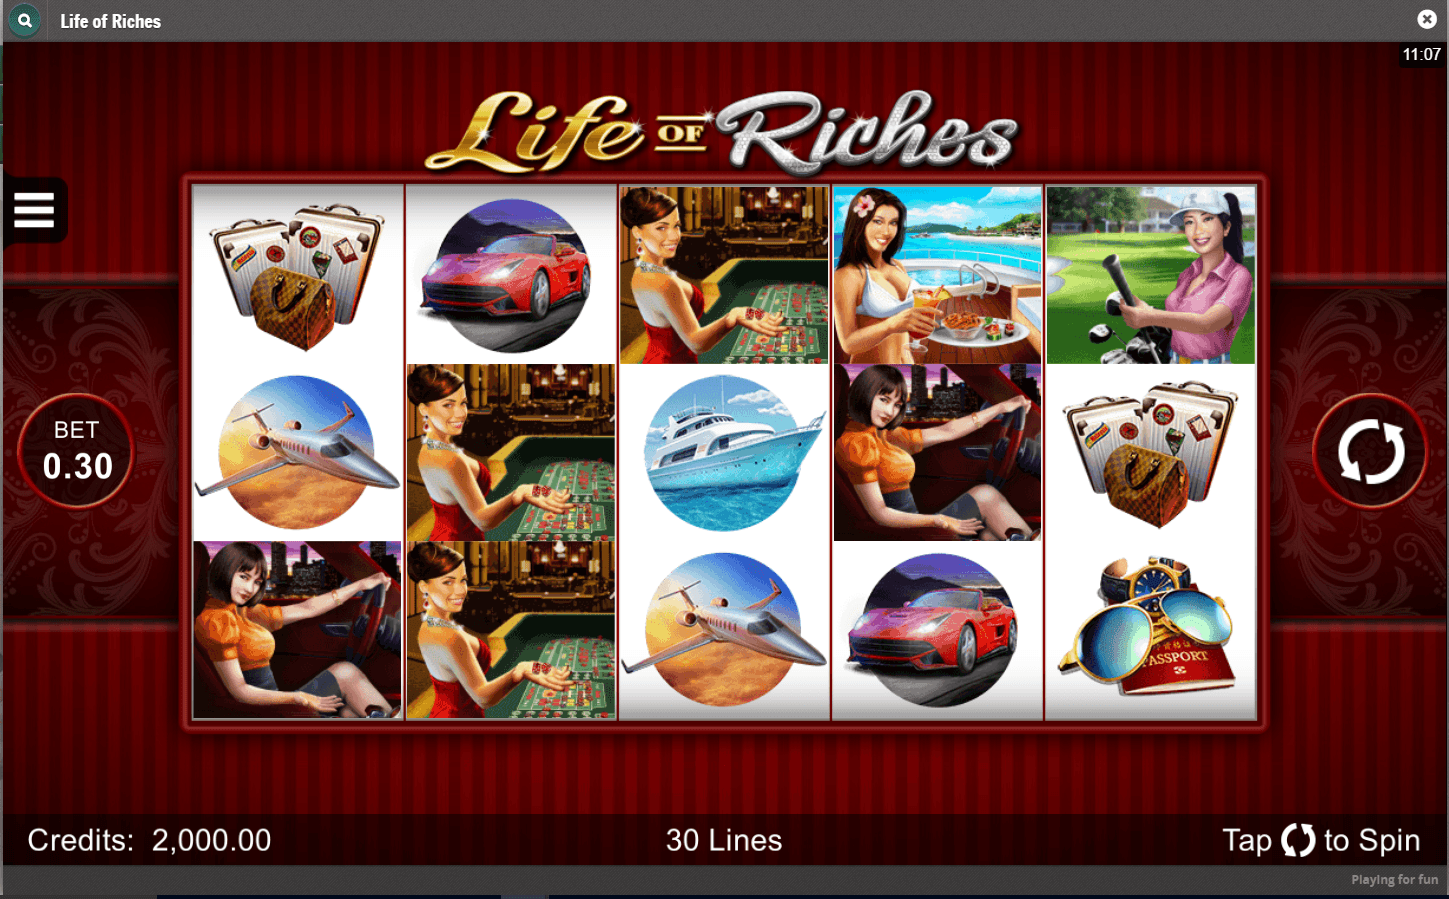 Cherry Casino - Life Of Riches slot game